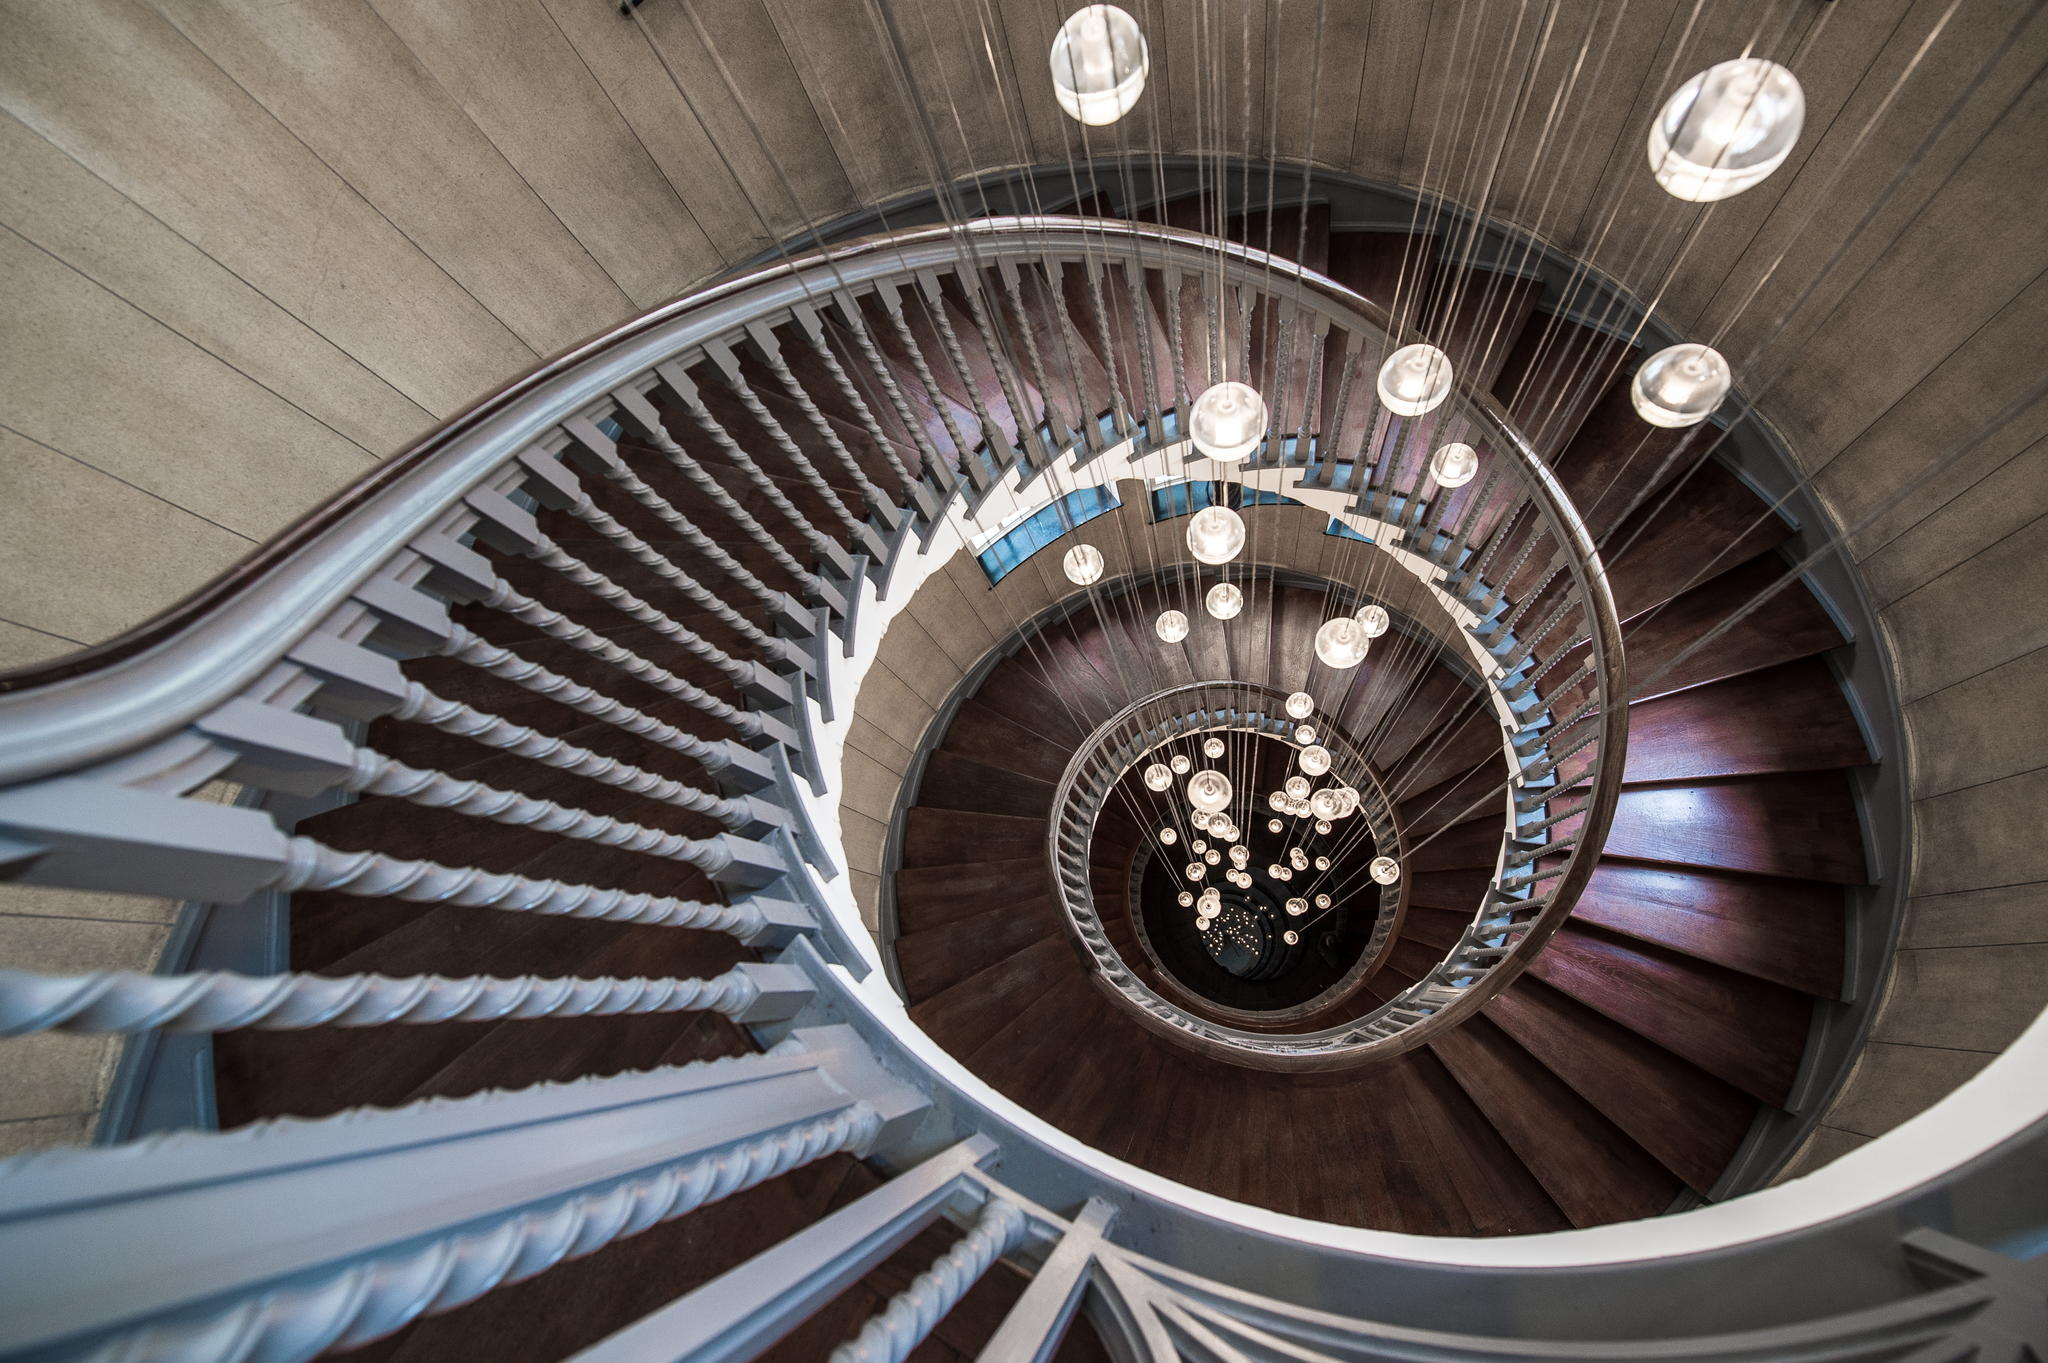 500px blog the passionate photographer community lose for Build your own spiral staircase